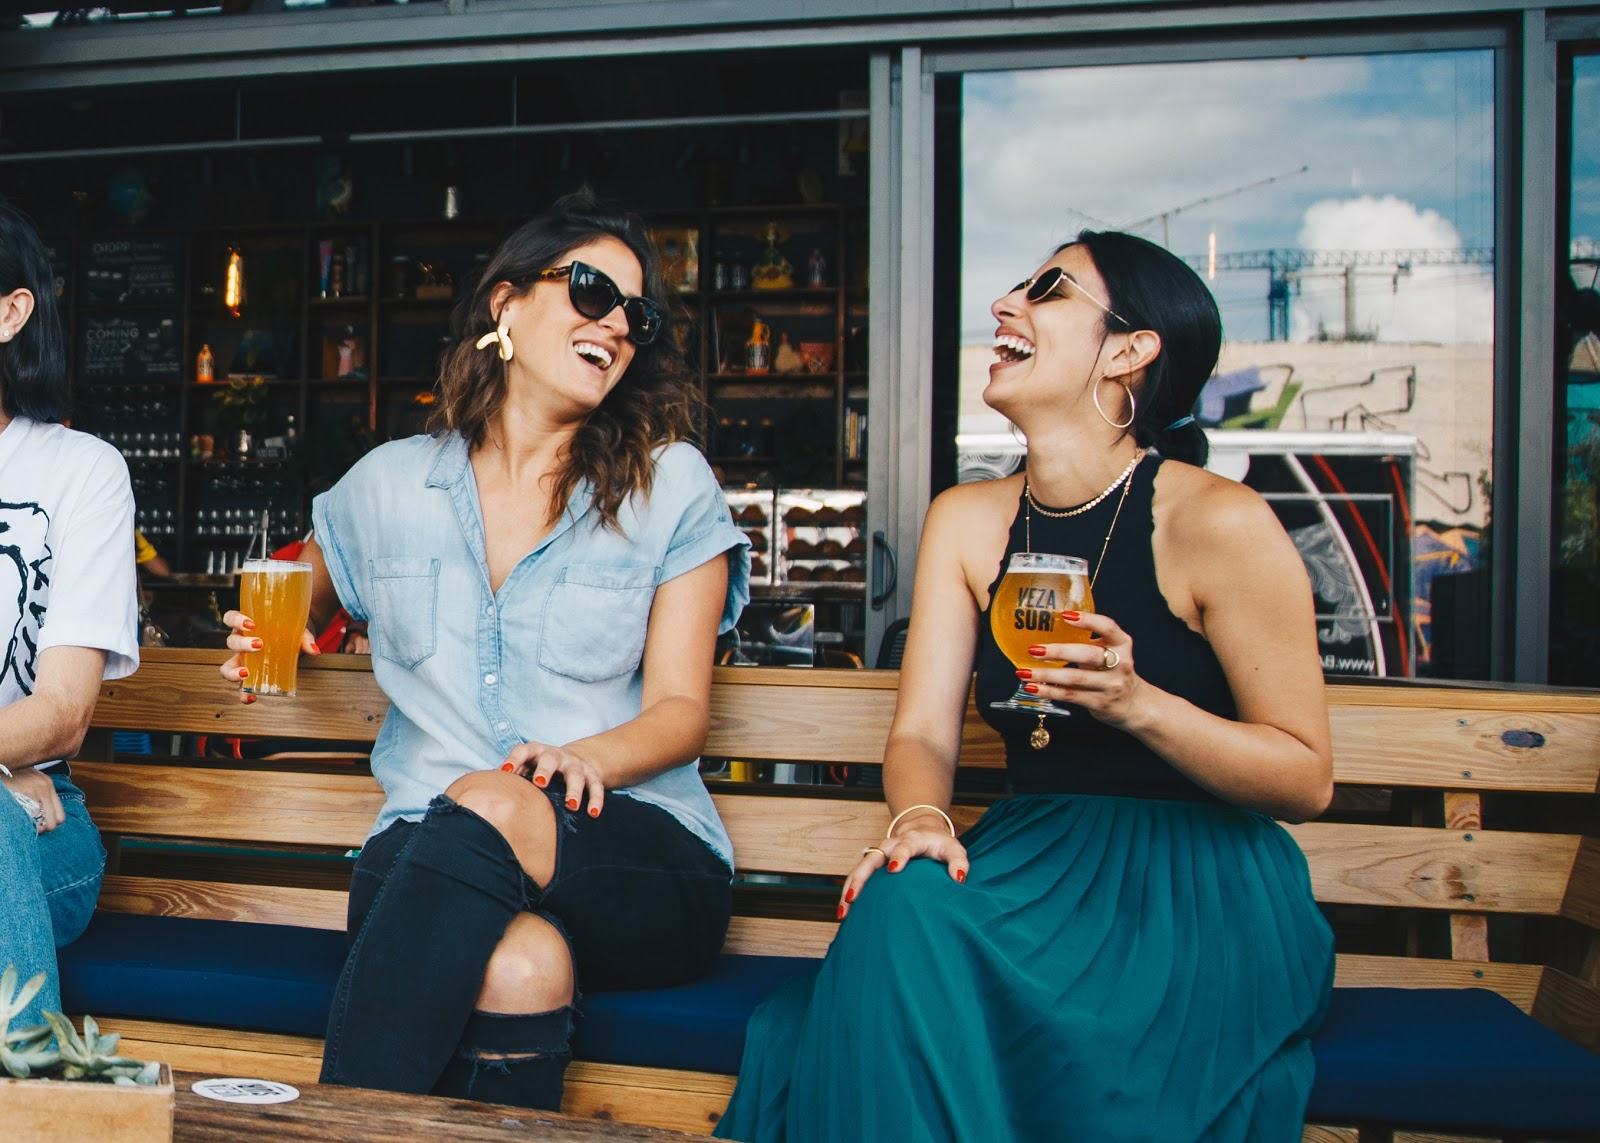 Two young women laugh on a bench while enjoying a drink of beer.